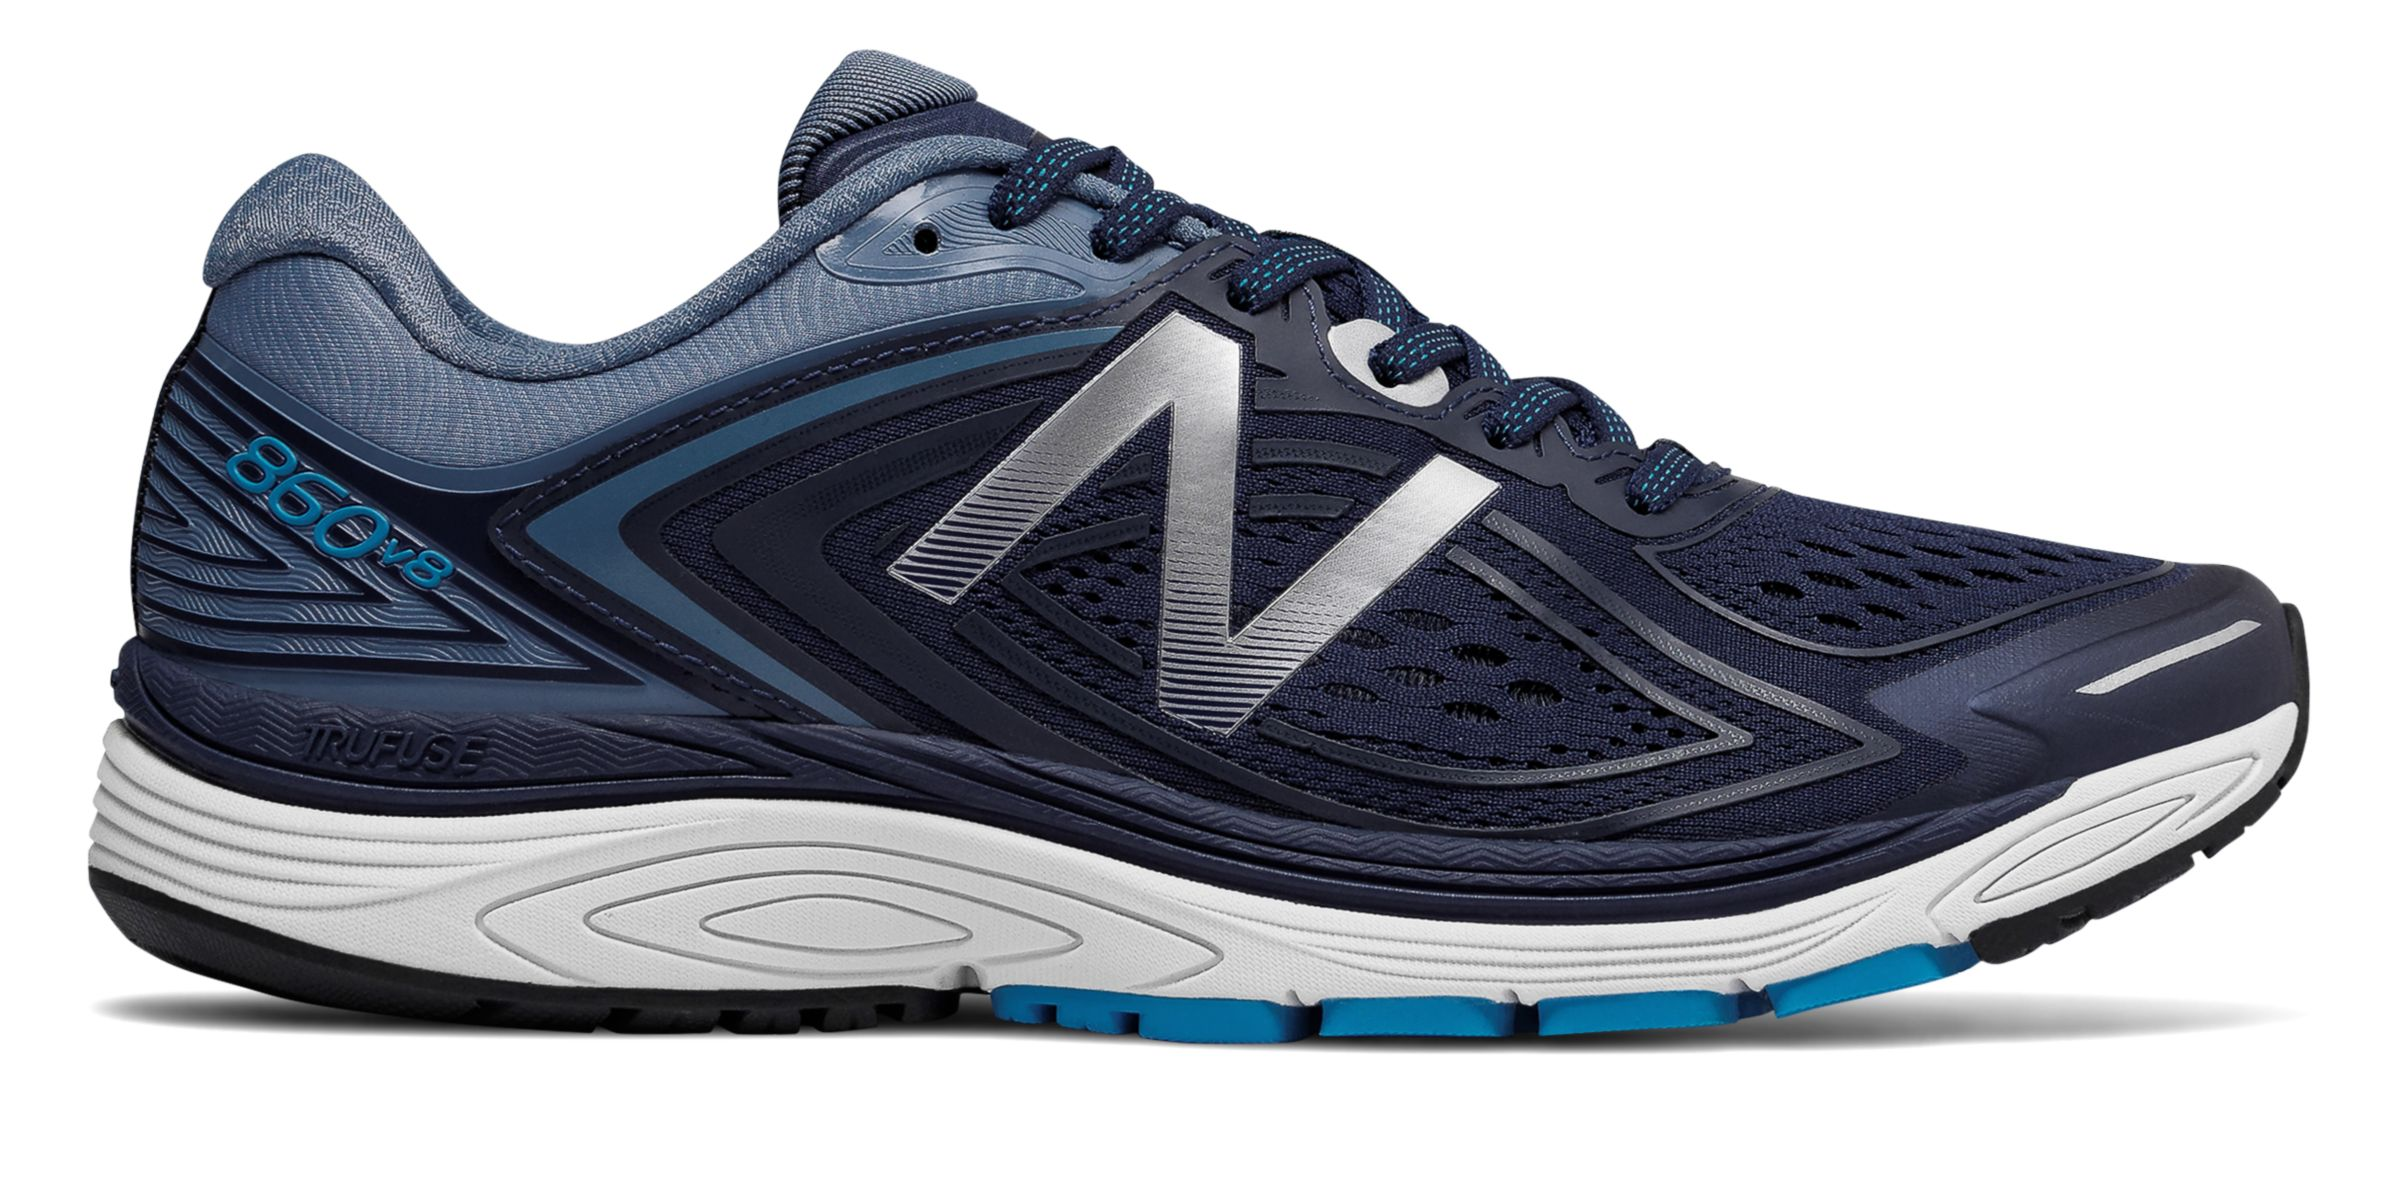 De Running Tallas Zapatillas Outlet New Balance Pan8nxHw